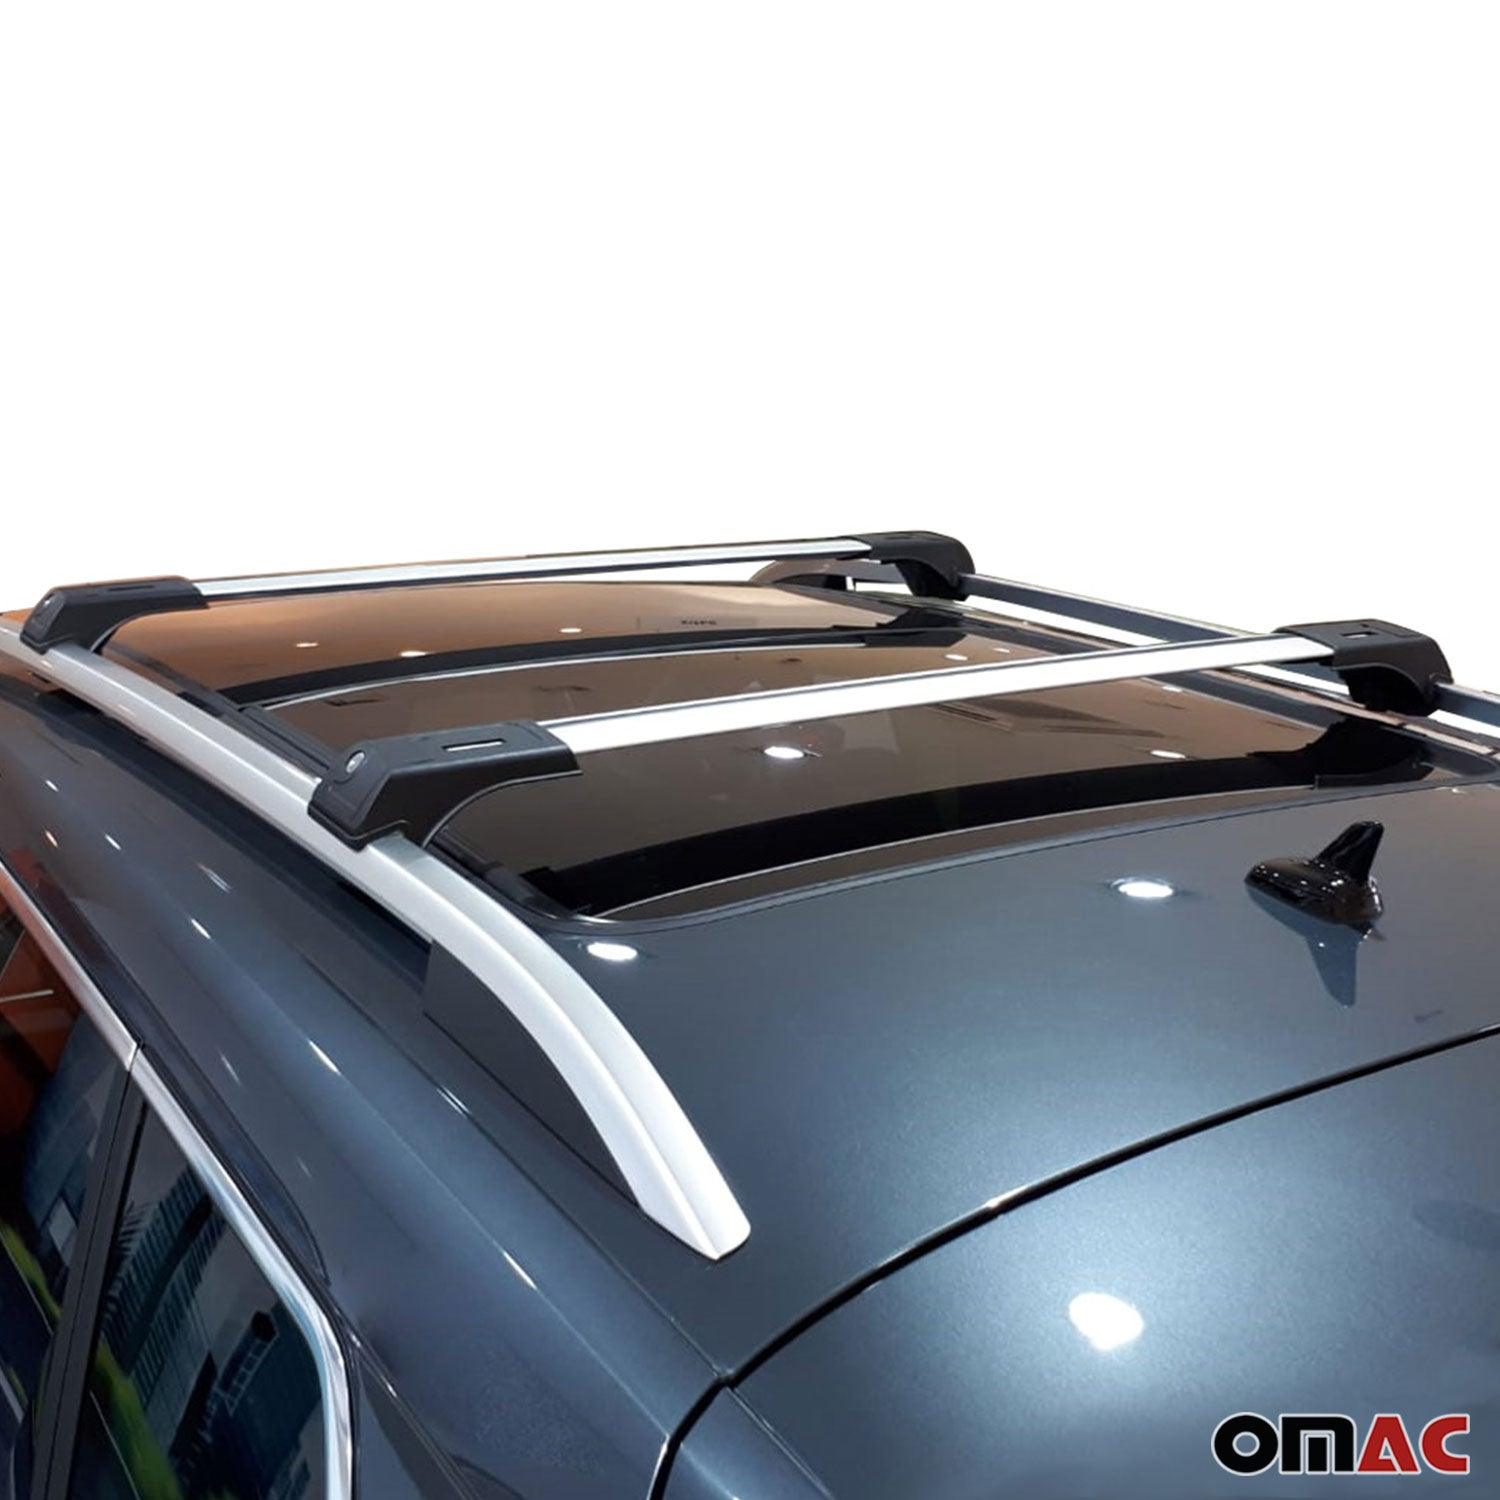 Roof Rack Cross Bars Luggage Carrier Silver for Nissan Murano 2003-2008